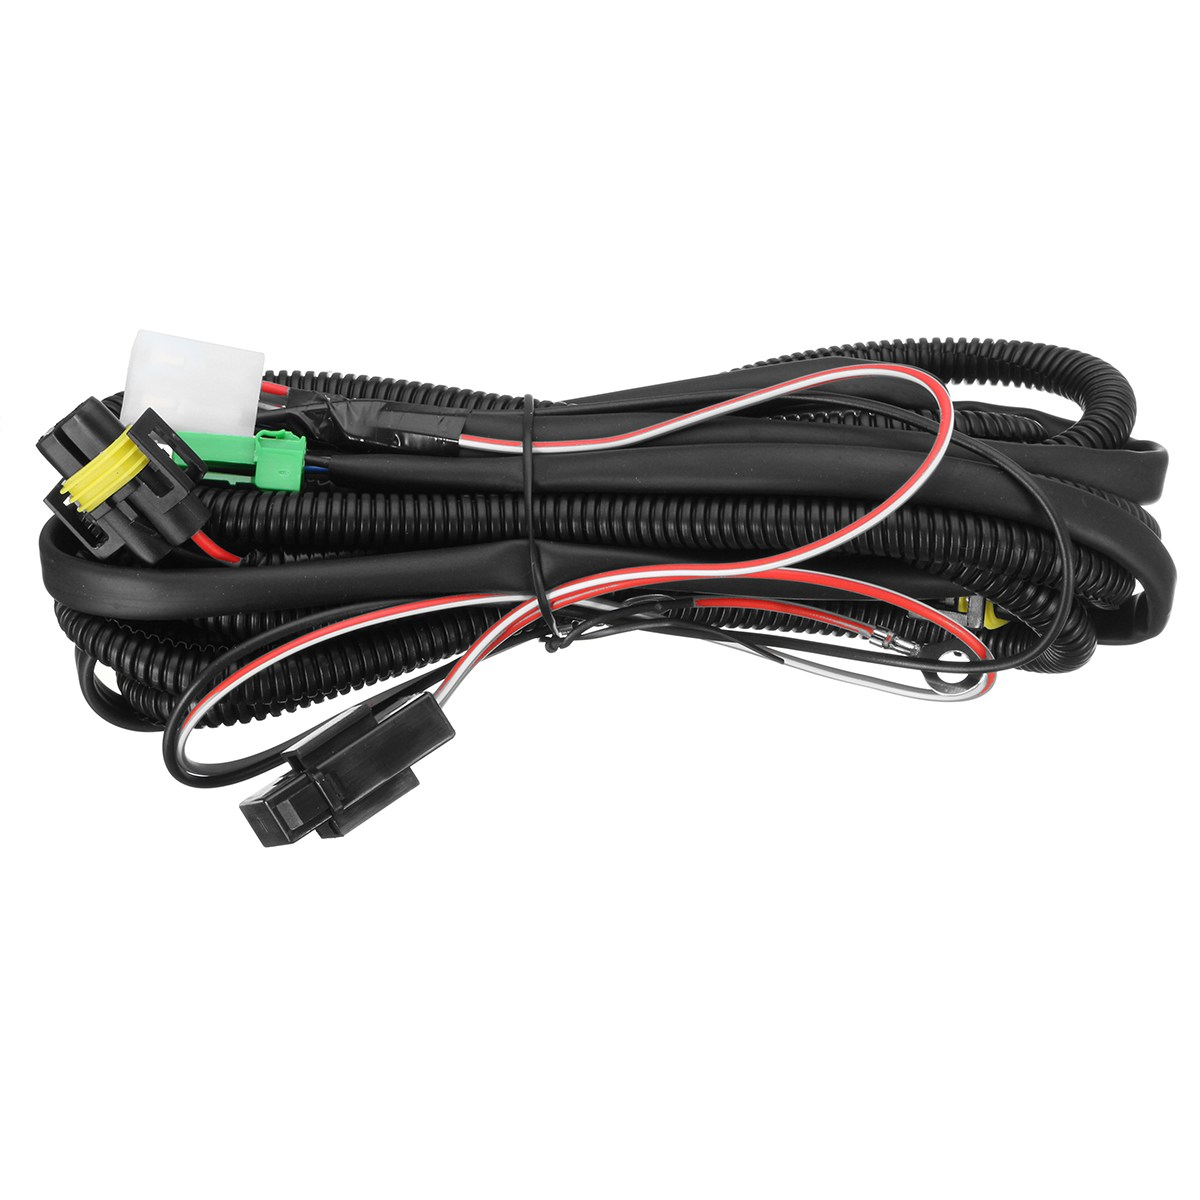 h11 fog light wiring harness sockets wire led indicators switch automotive relay for ford honda nissan acura [ 1200 x 1200 Pixel ]